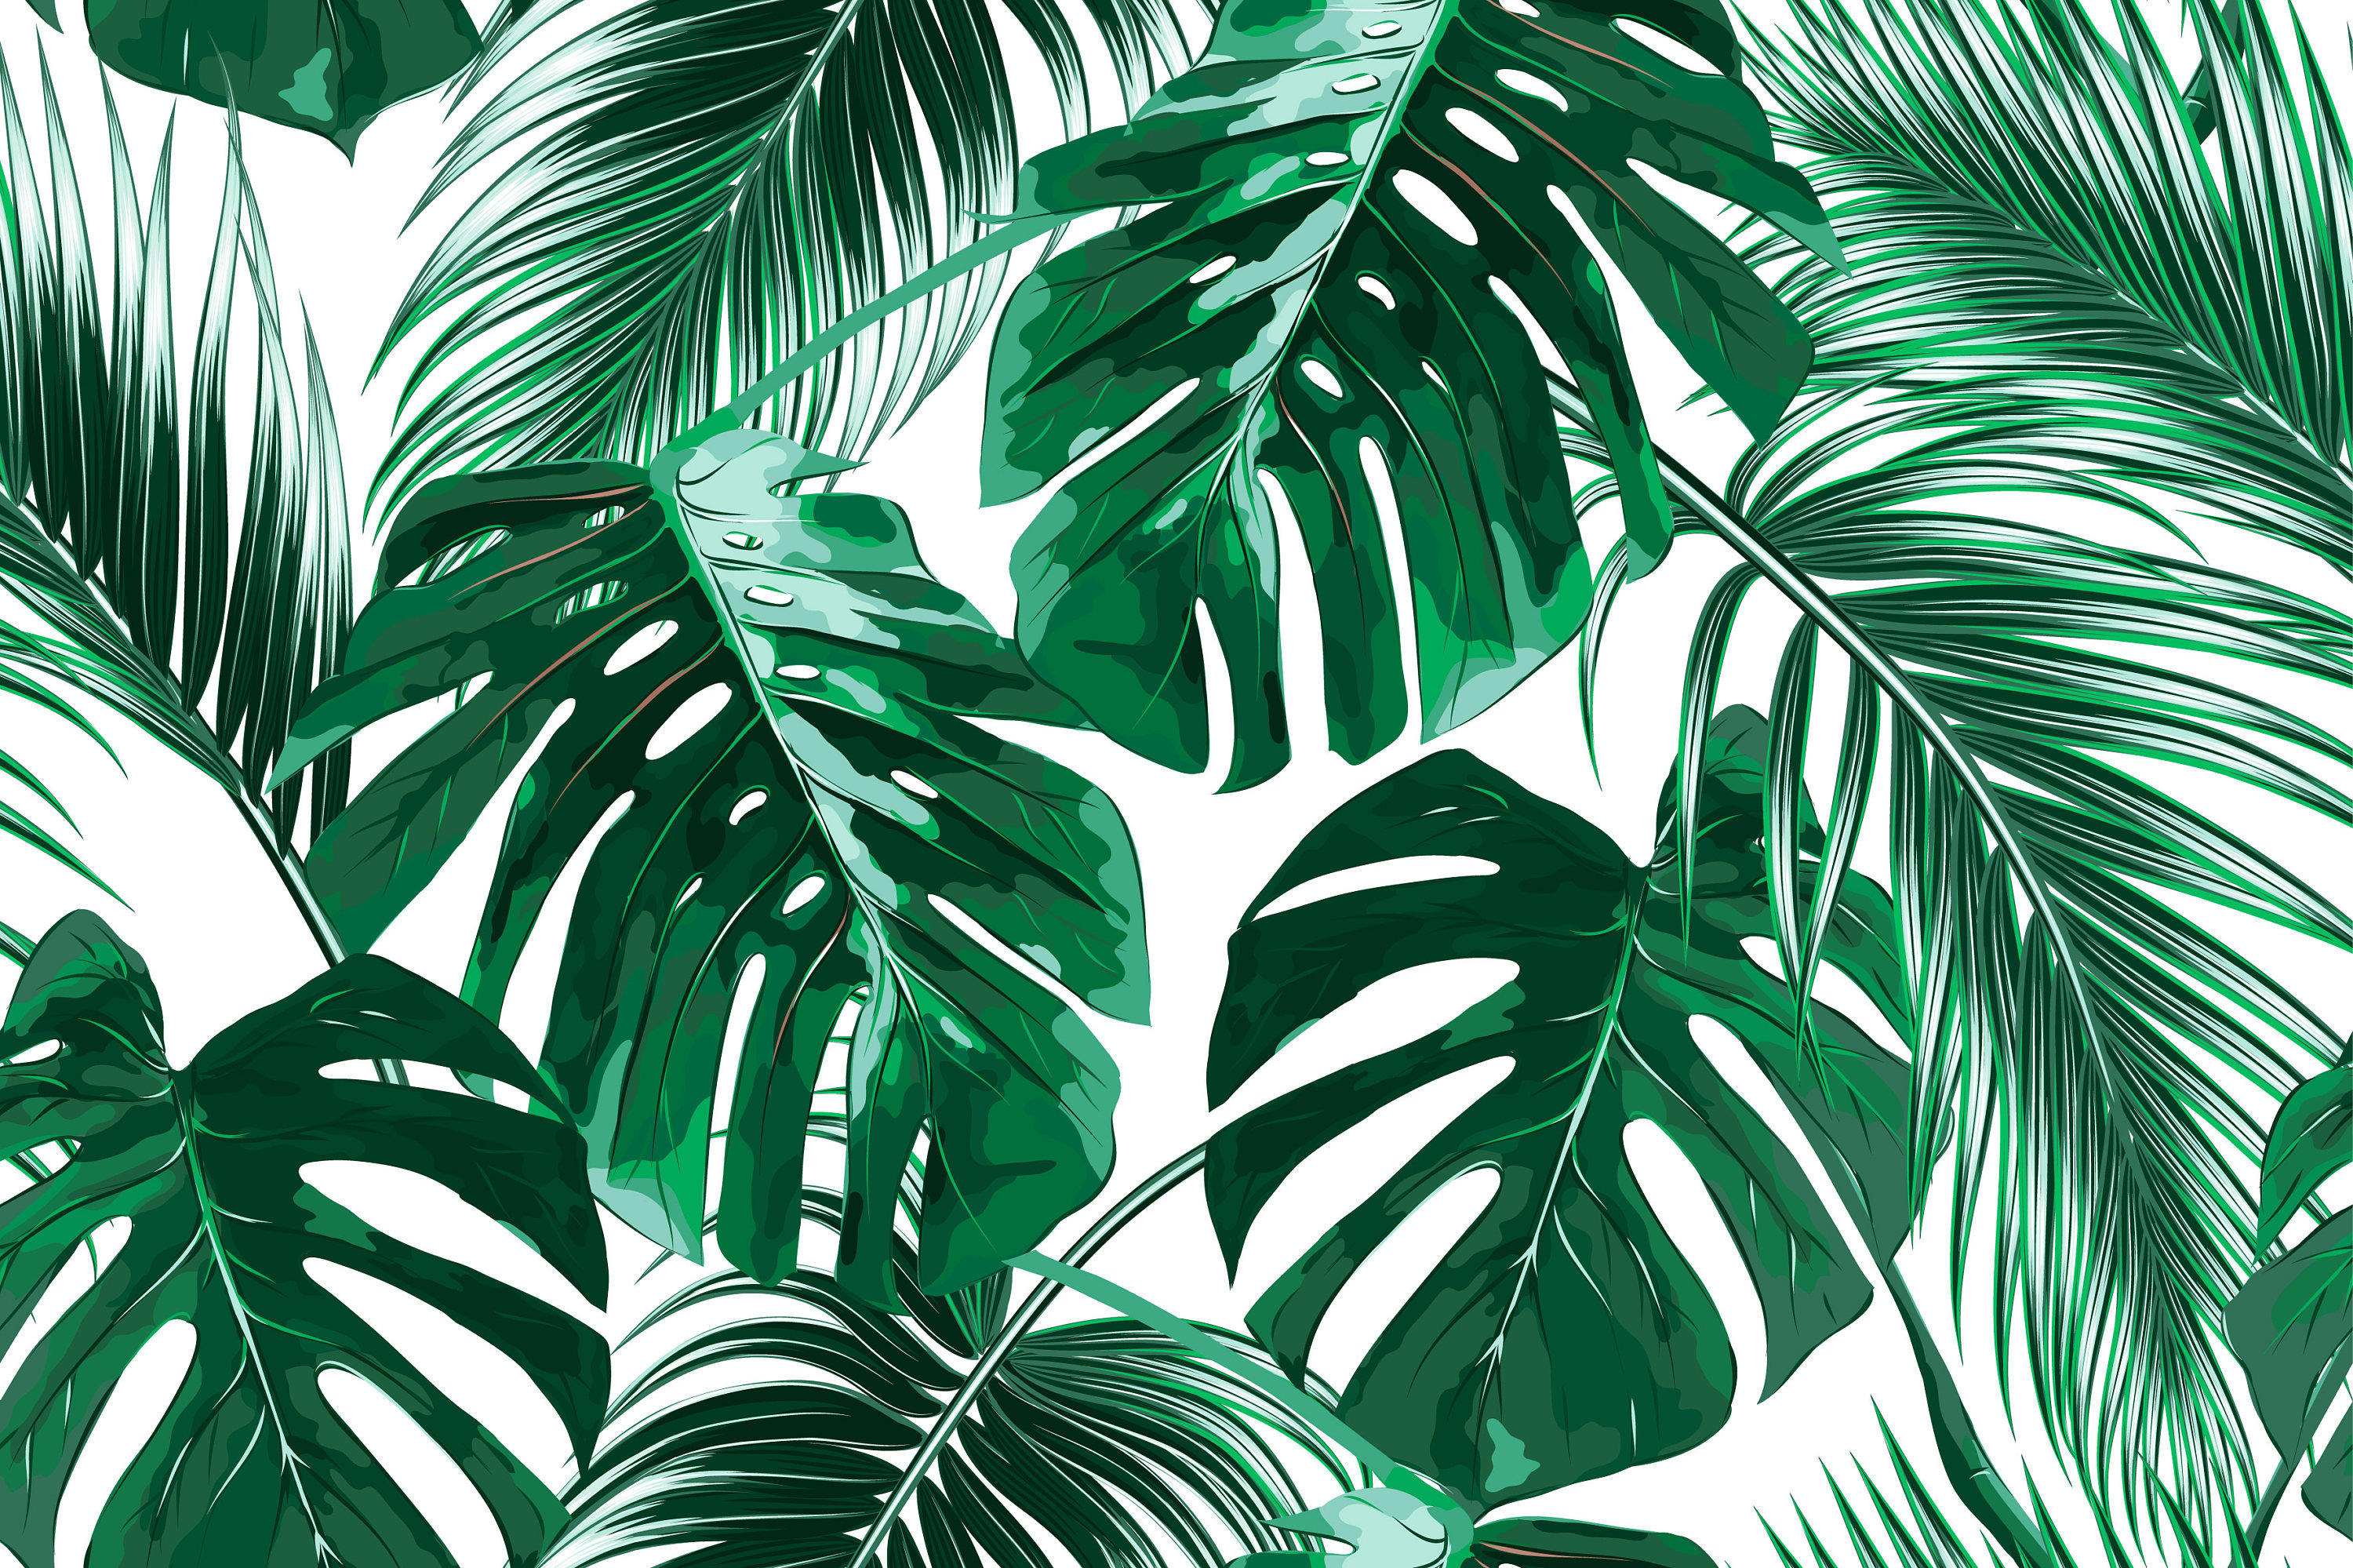 Green Tropical Leaves Wallpapers Wallpaper Cave Click on watch later to put videos here. green tropical leaves wallpapers